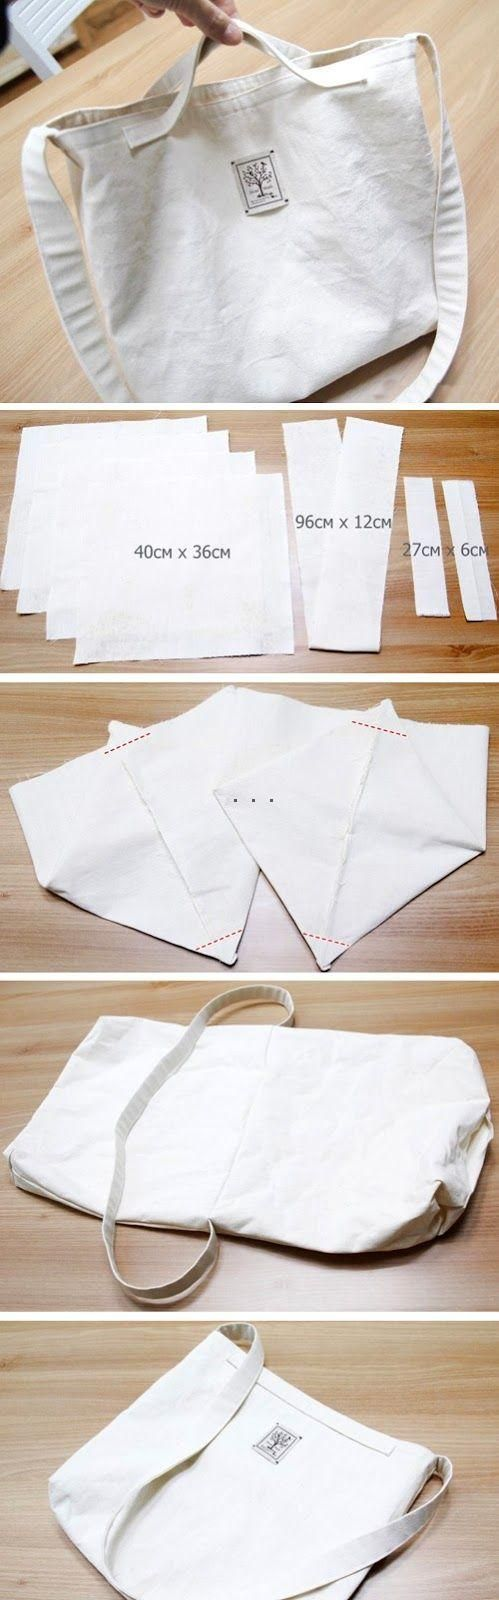 How-to-Sew-Double-Sided-Eco-Bag | Sewing | Pinterest | Jeanstasche ...